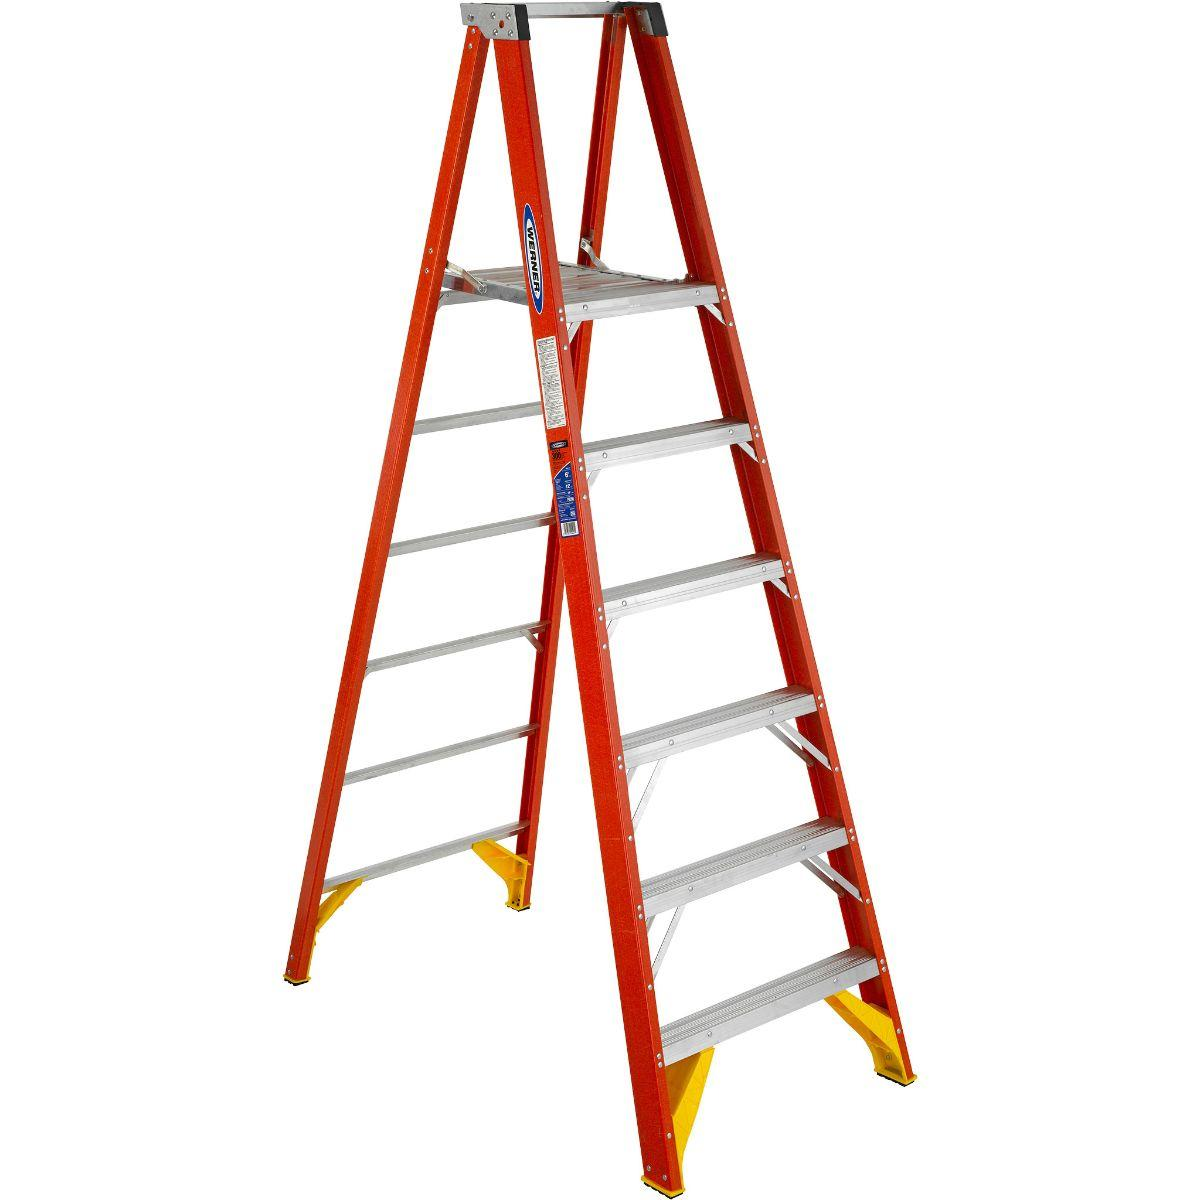 P6206 Fiberglass 6 ft Platform Ladder - 6'